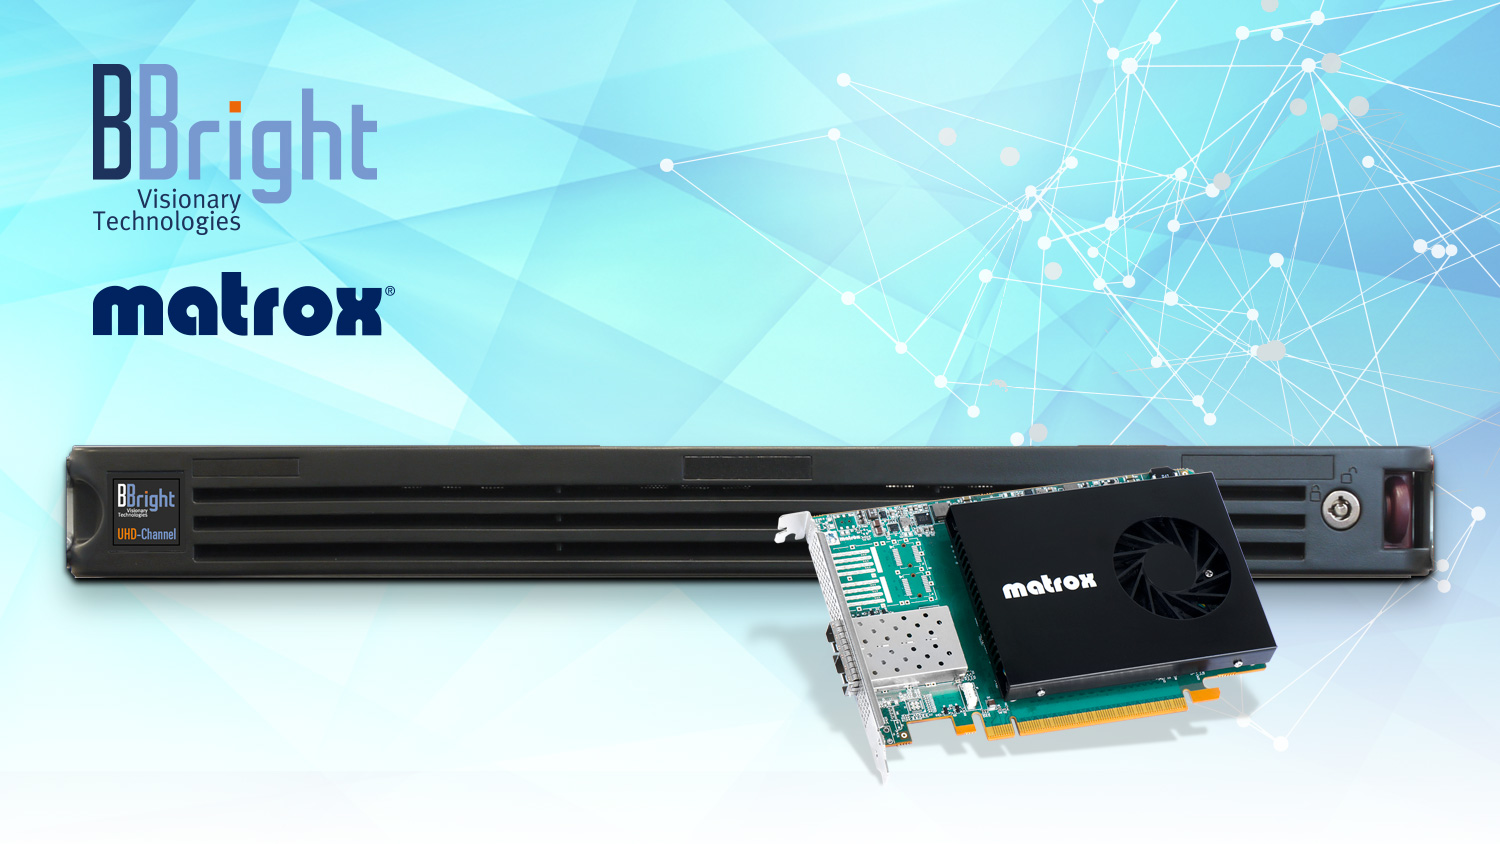 BBright UHD Video Production Server with Matrox DSX LE5 D25